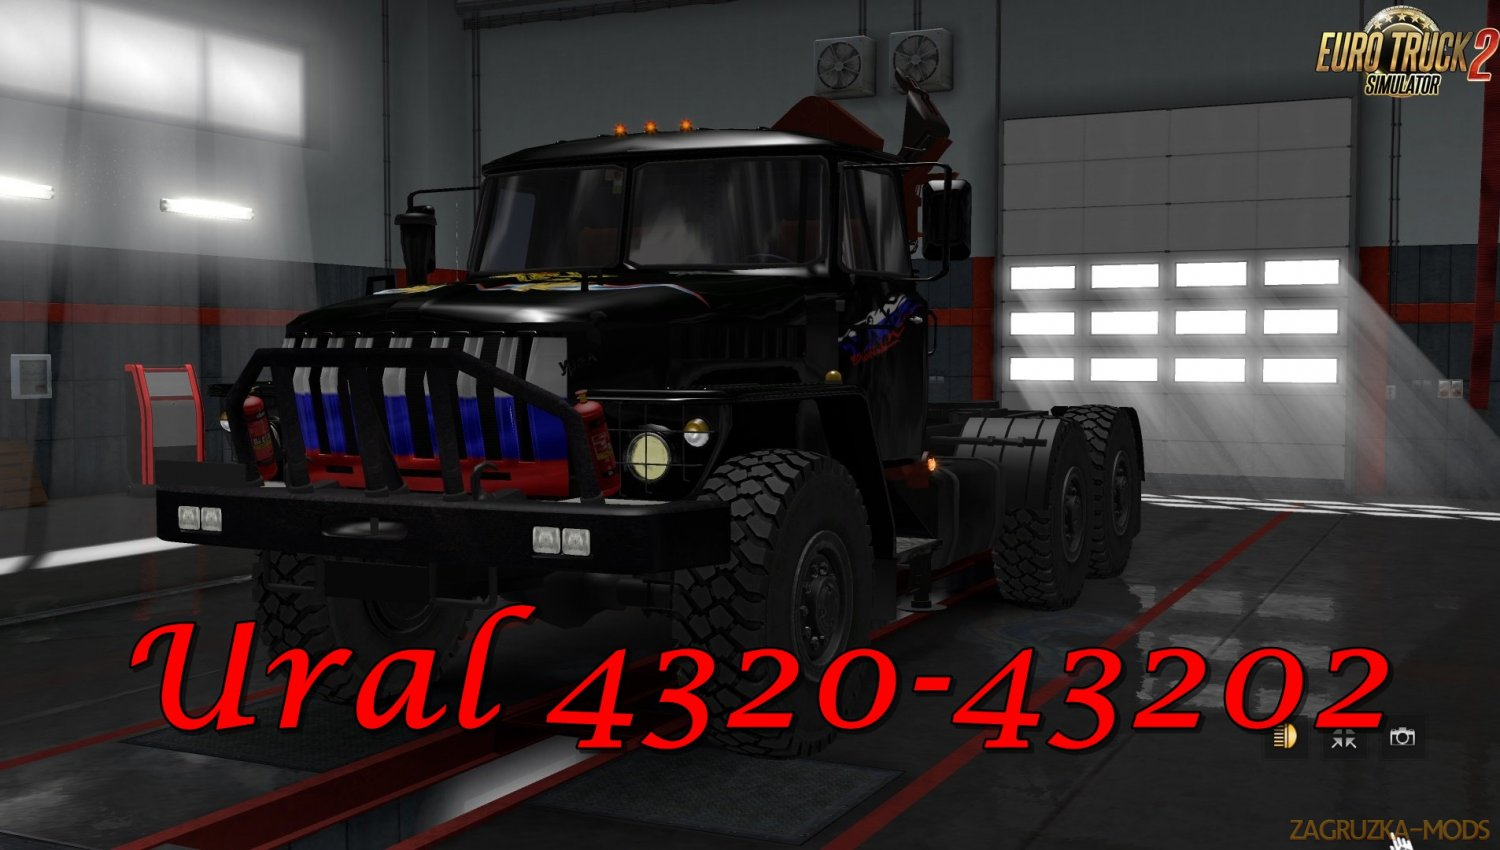 Ural 4320-43202 v6.0 for Ets2